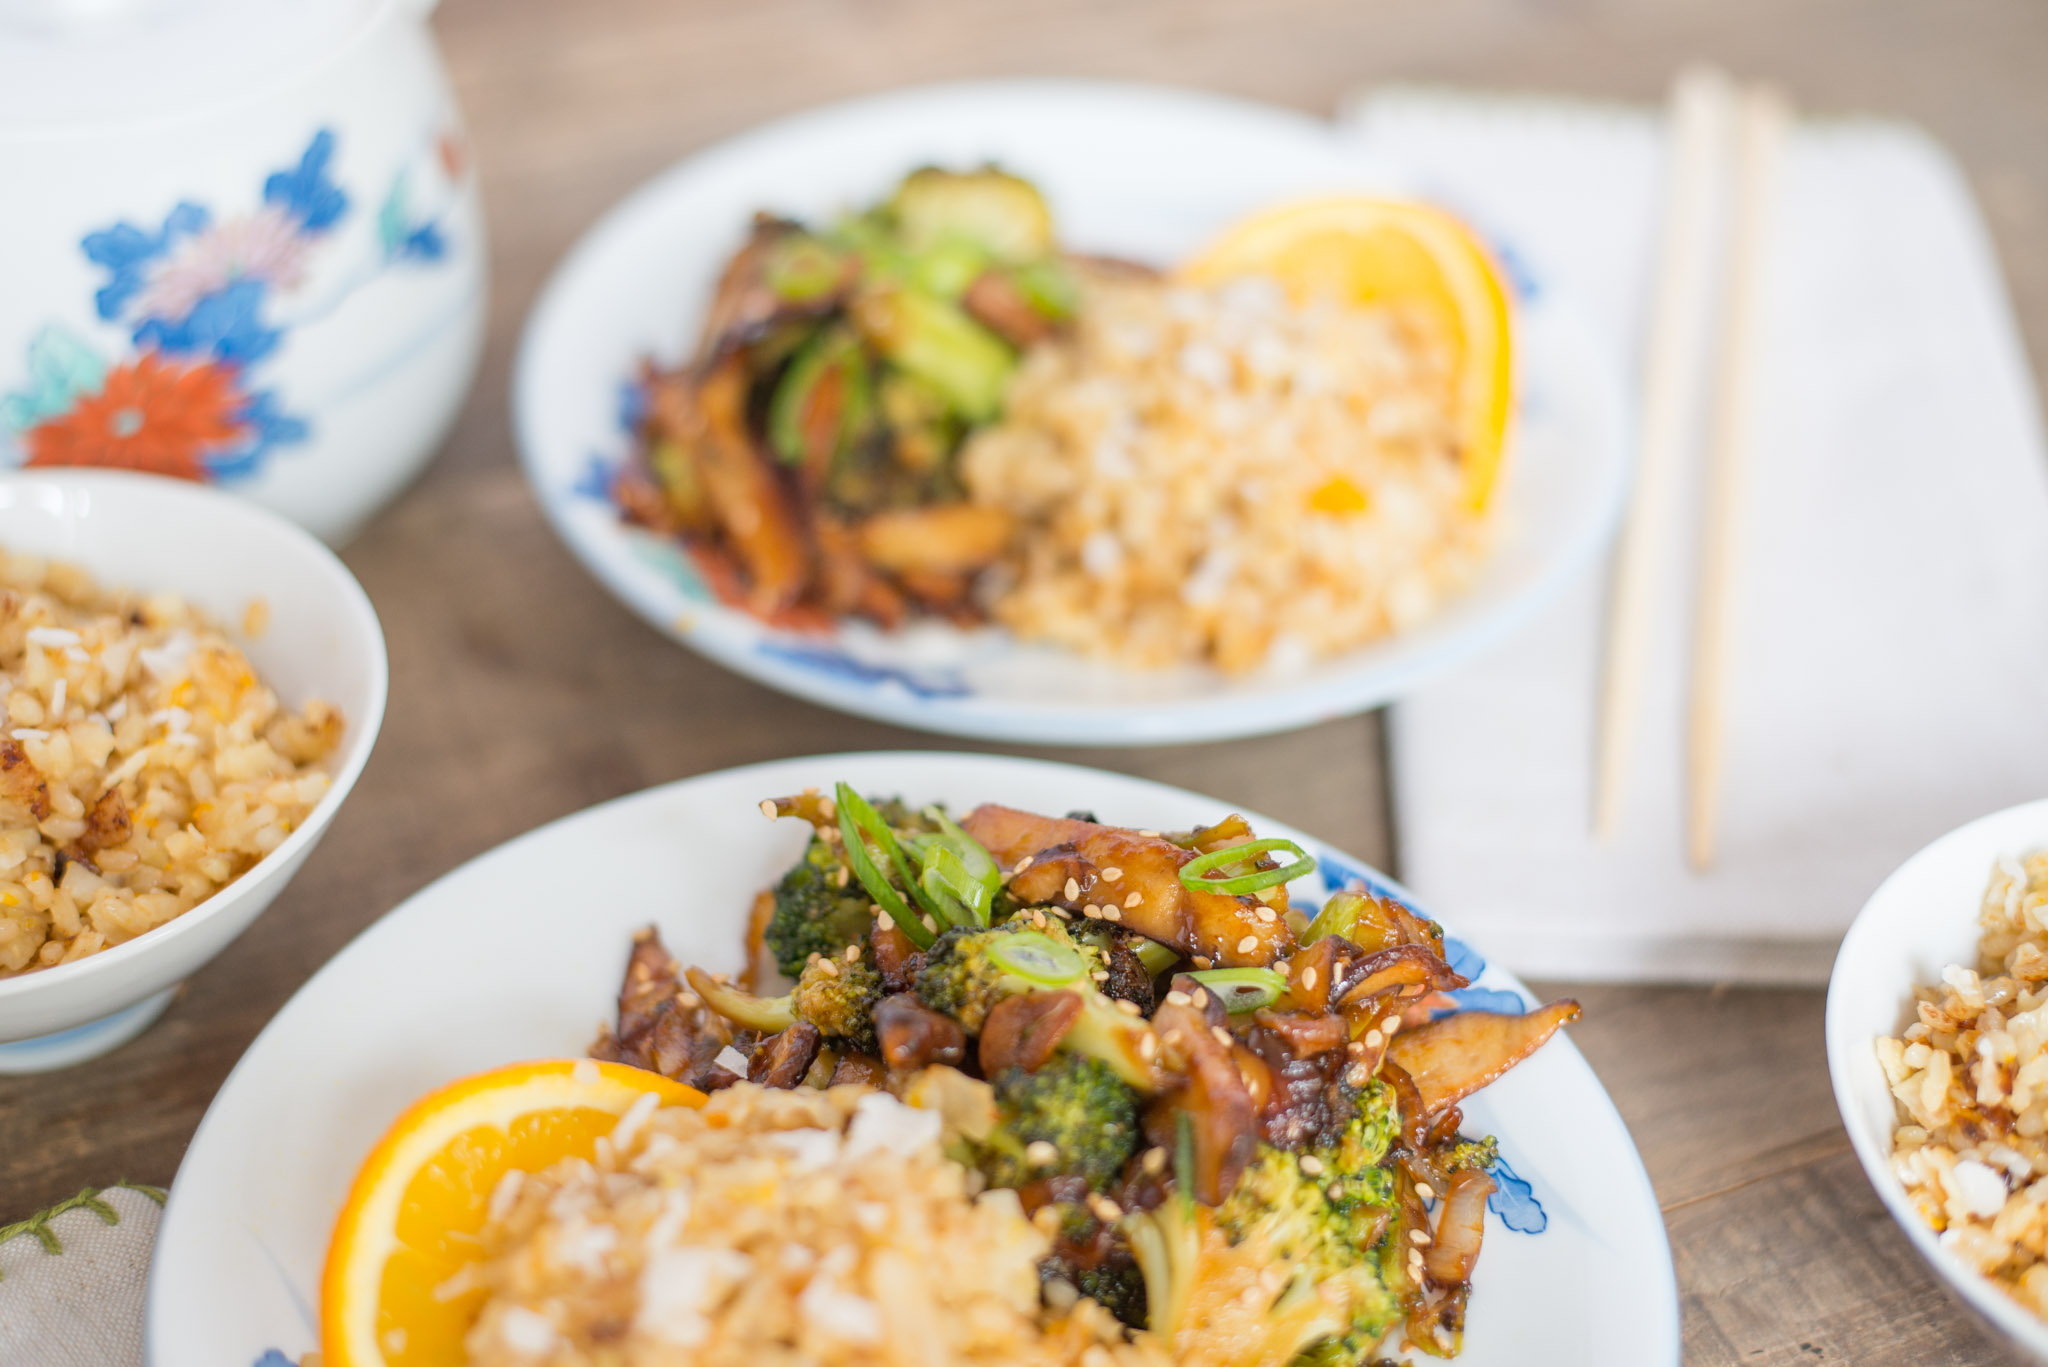 Mixed & Measured | Broccoli & Shiitake Mushrooms with Coconut Rice